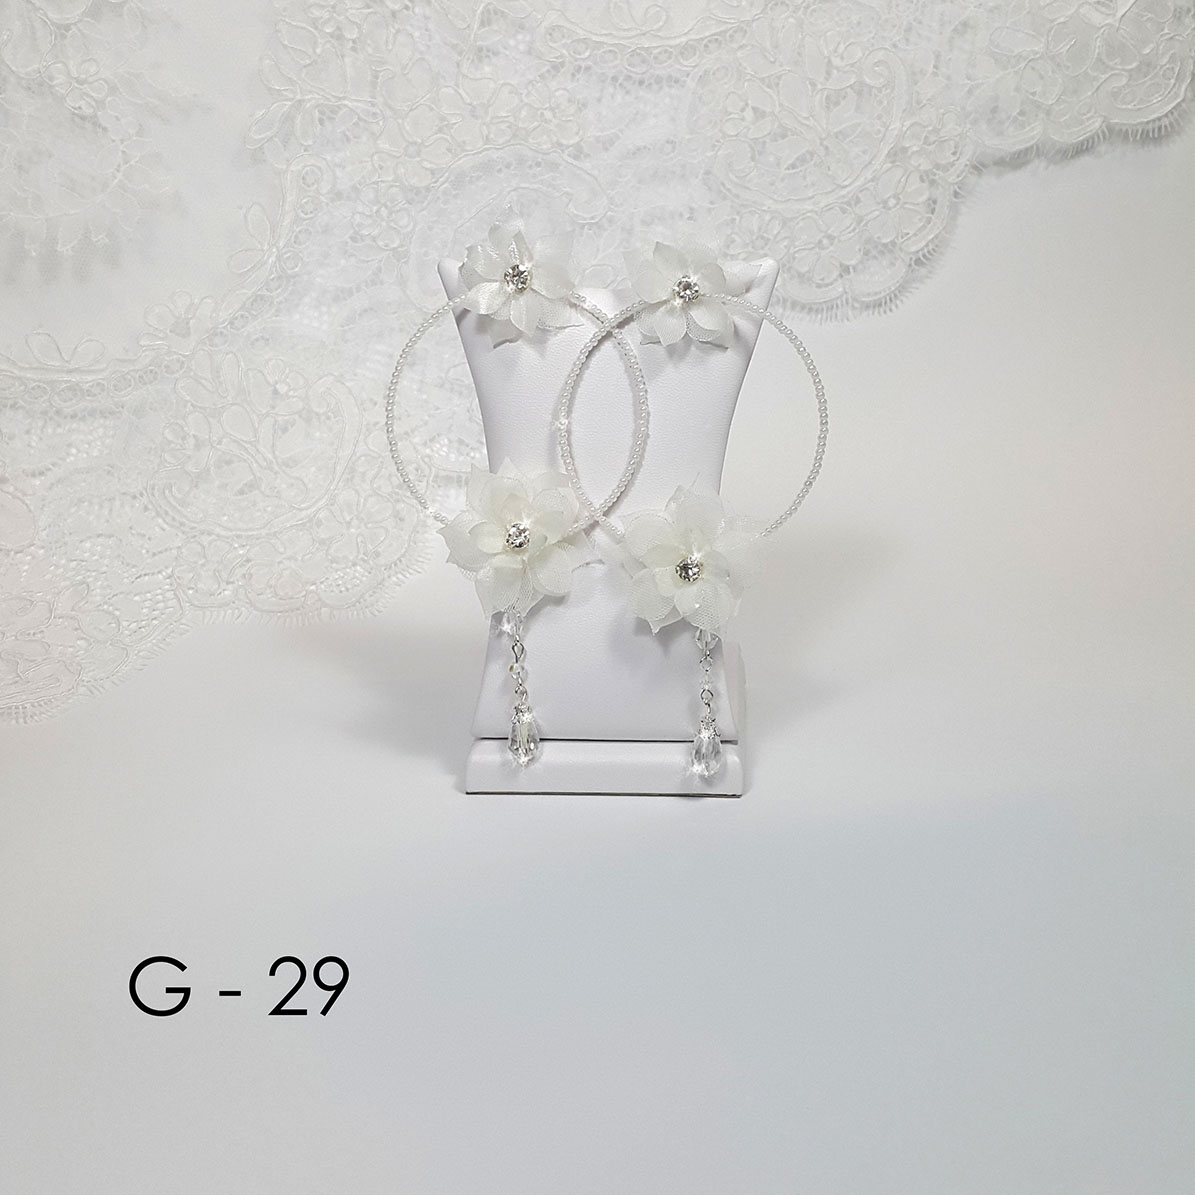 Accessory G 29 for the bride Foto 1